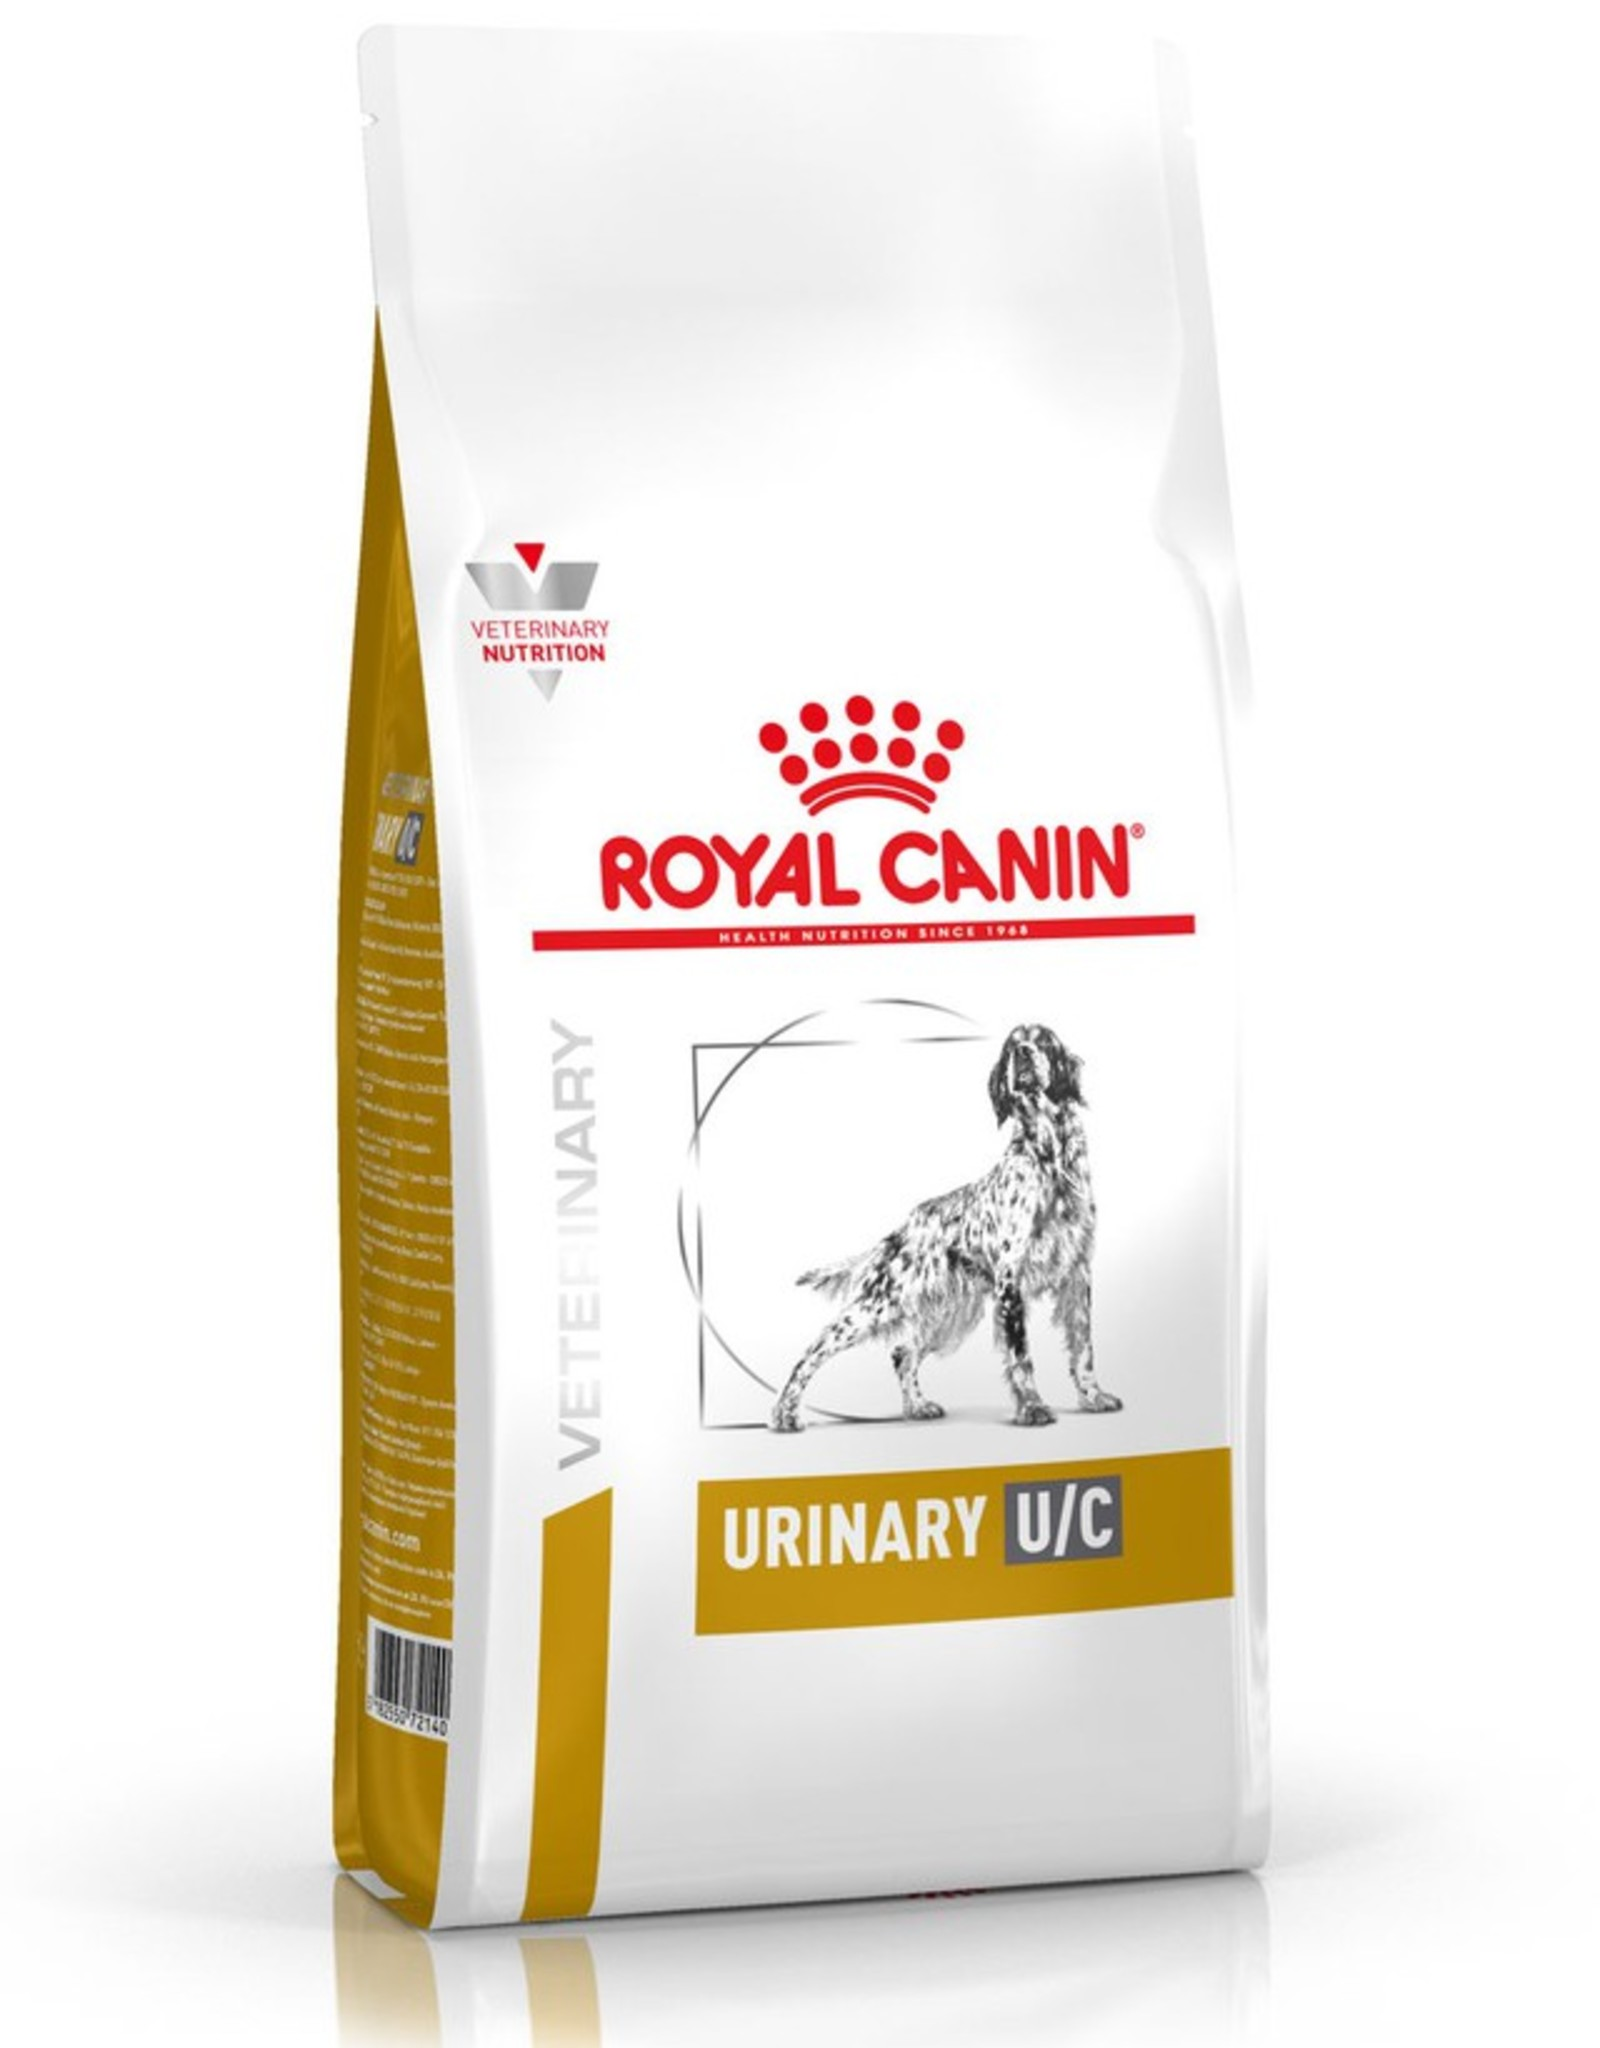 Royal Canin Royal Canin Urinary U/c Low Proteine Hond 7,5kg